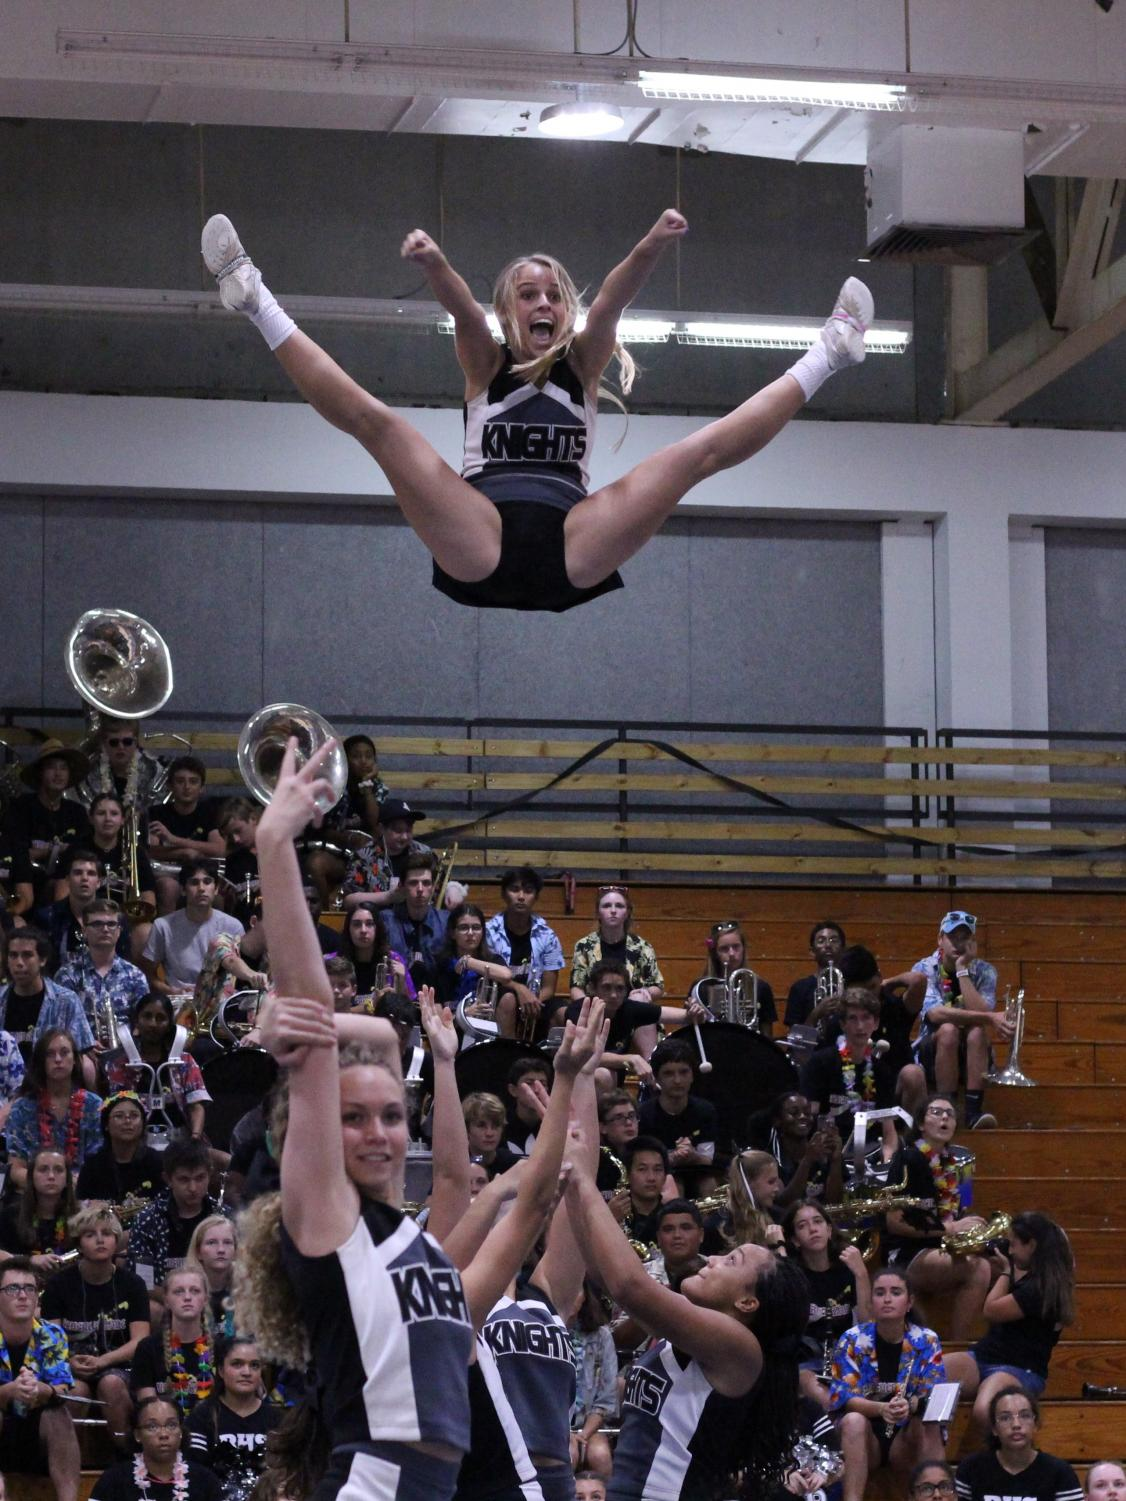 Flyer+Alison+Quigley+%28%2722%29+during+a+mid-air+stunt+with+the+Robinson+knights+cheer+team.